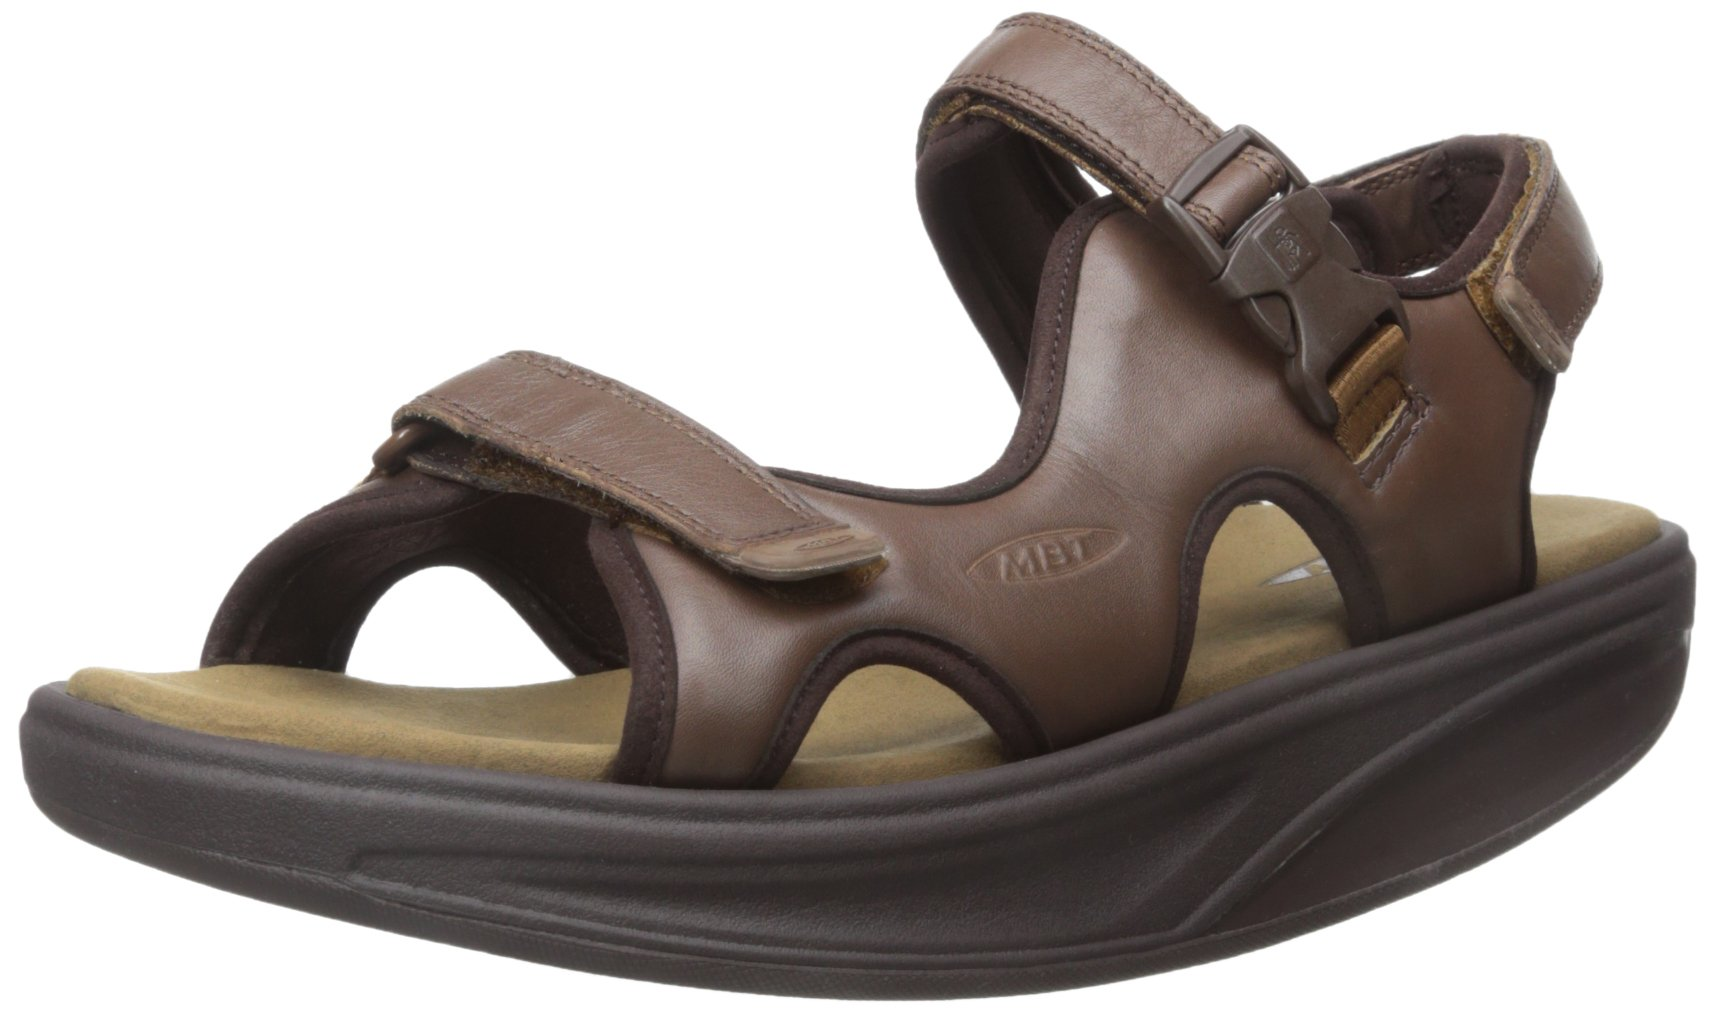 MBT Men's Kisumu 3S M Sandal, Chocolate Brown, 45 M EU/11-11.5 M US